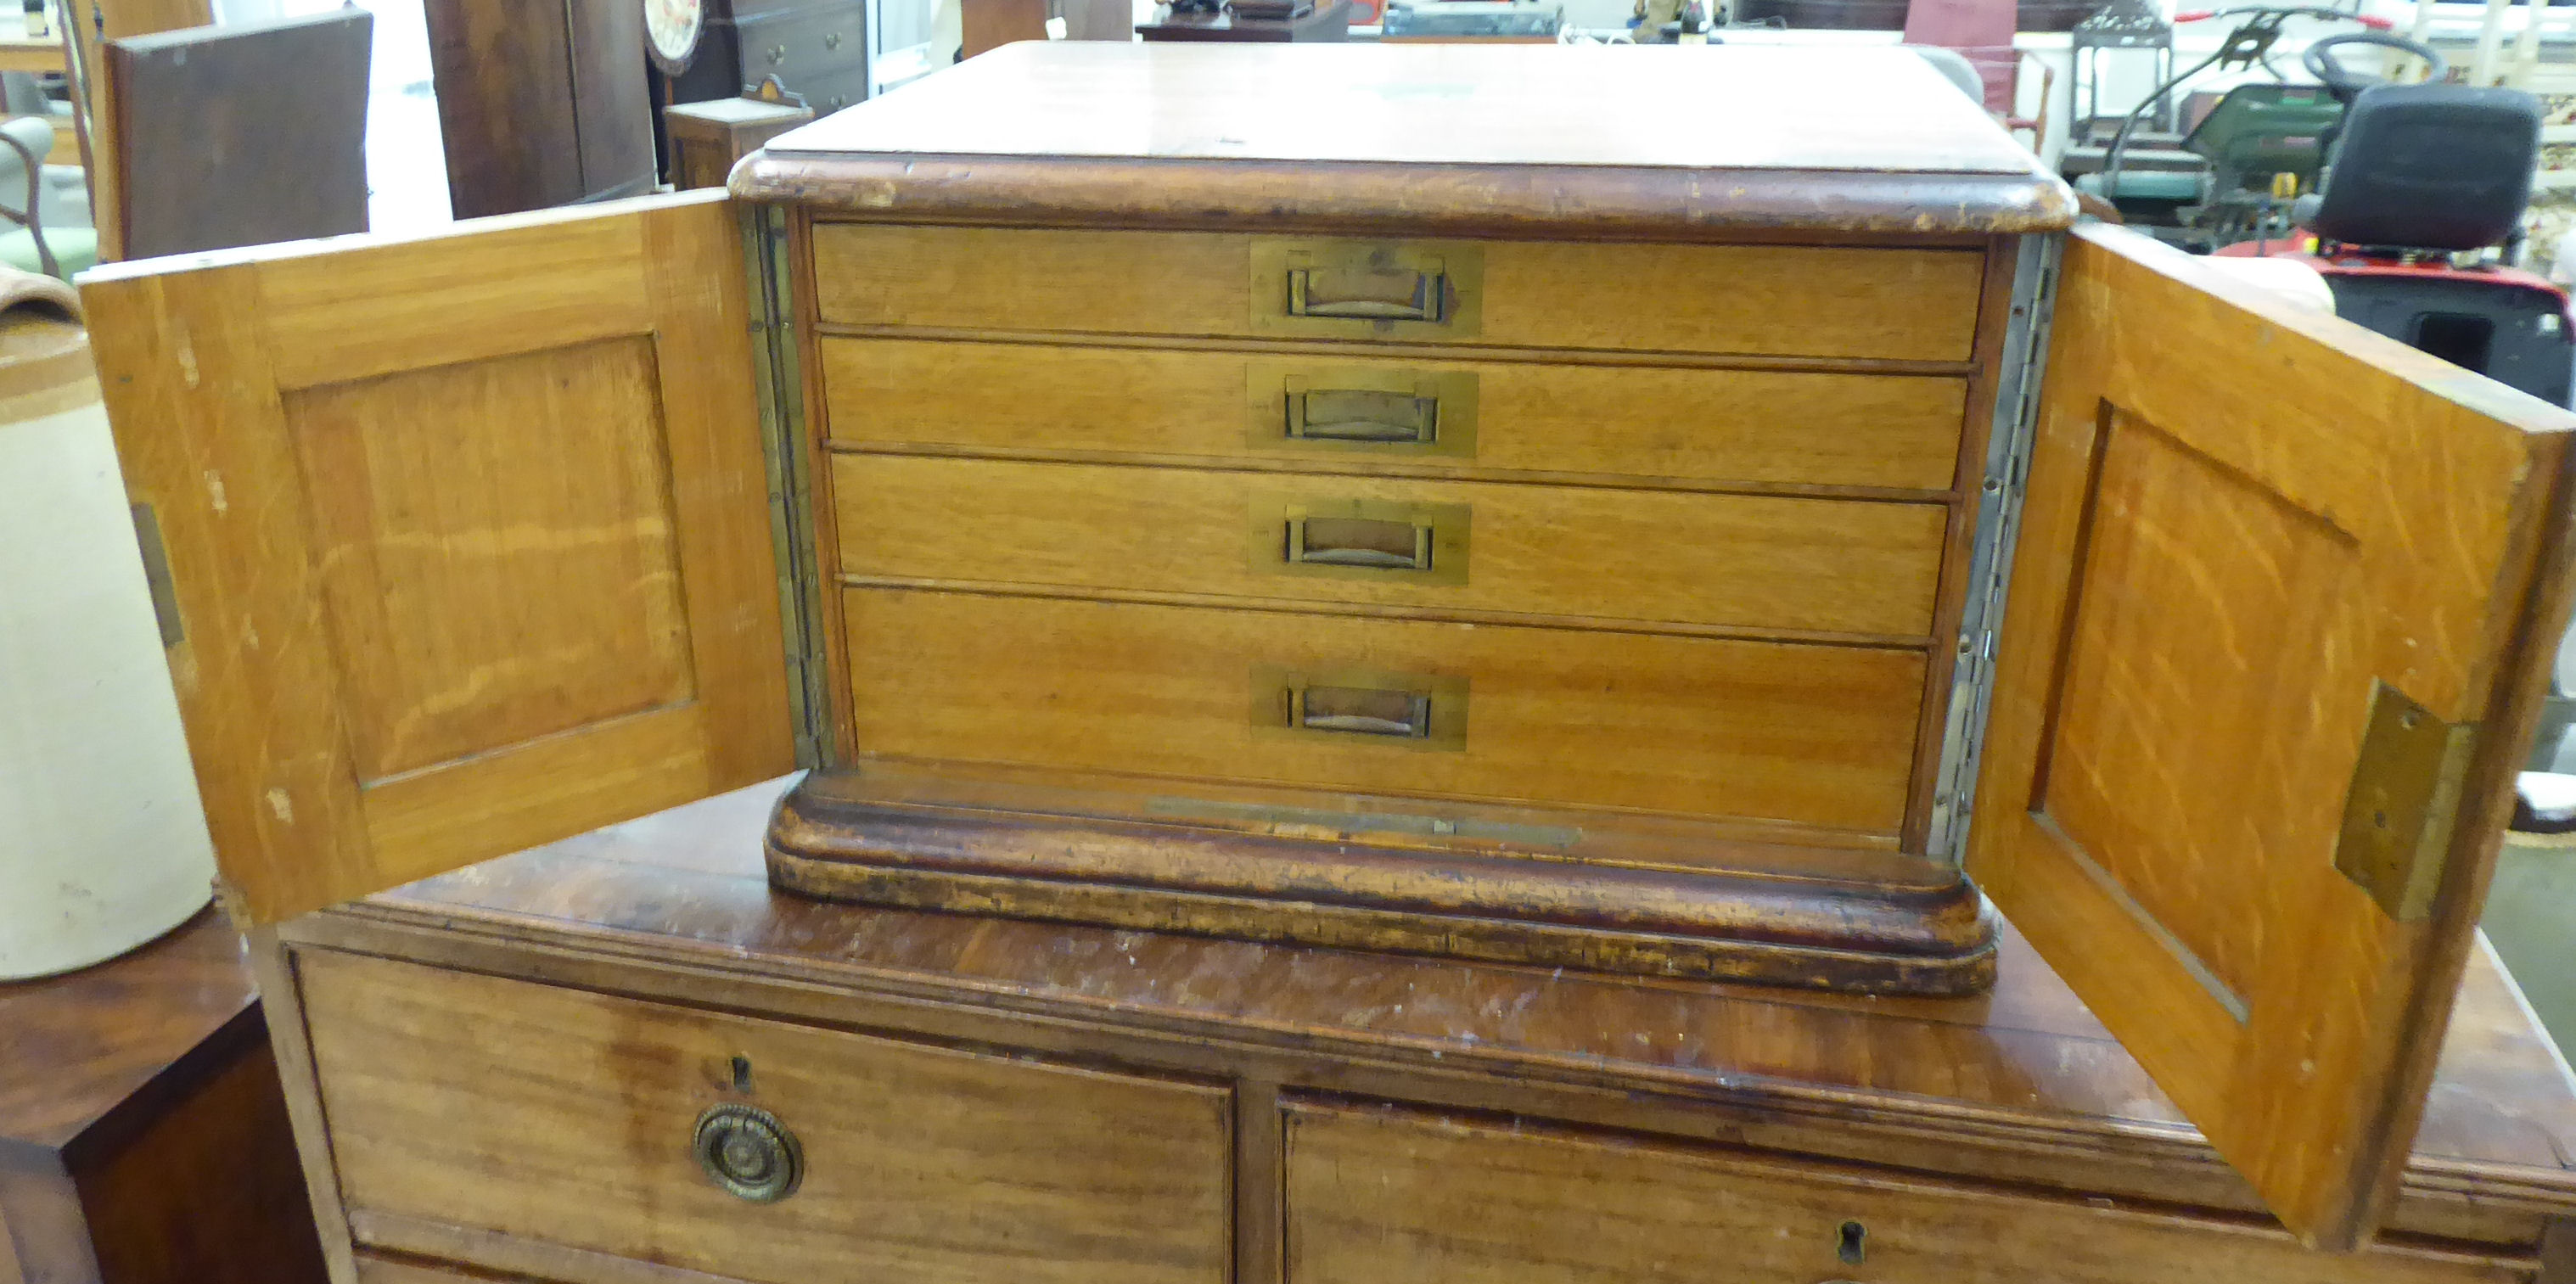 Lot 41 - A 1920s oak canteen chest (only) with a pair of locked doors,